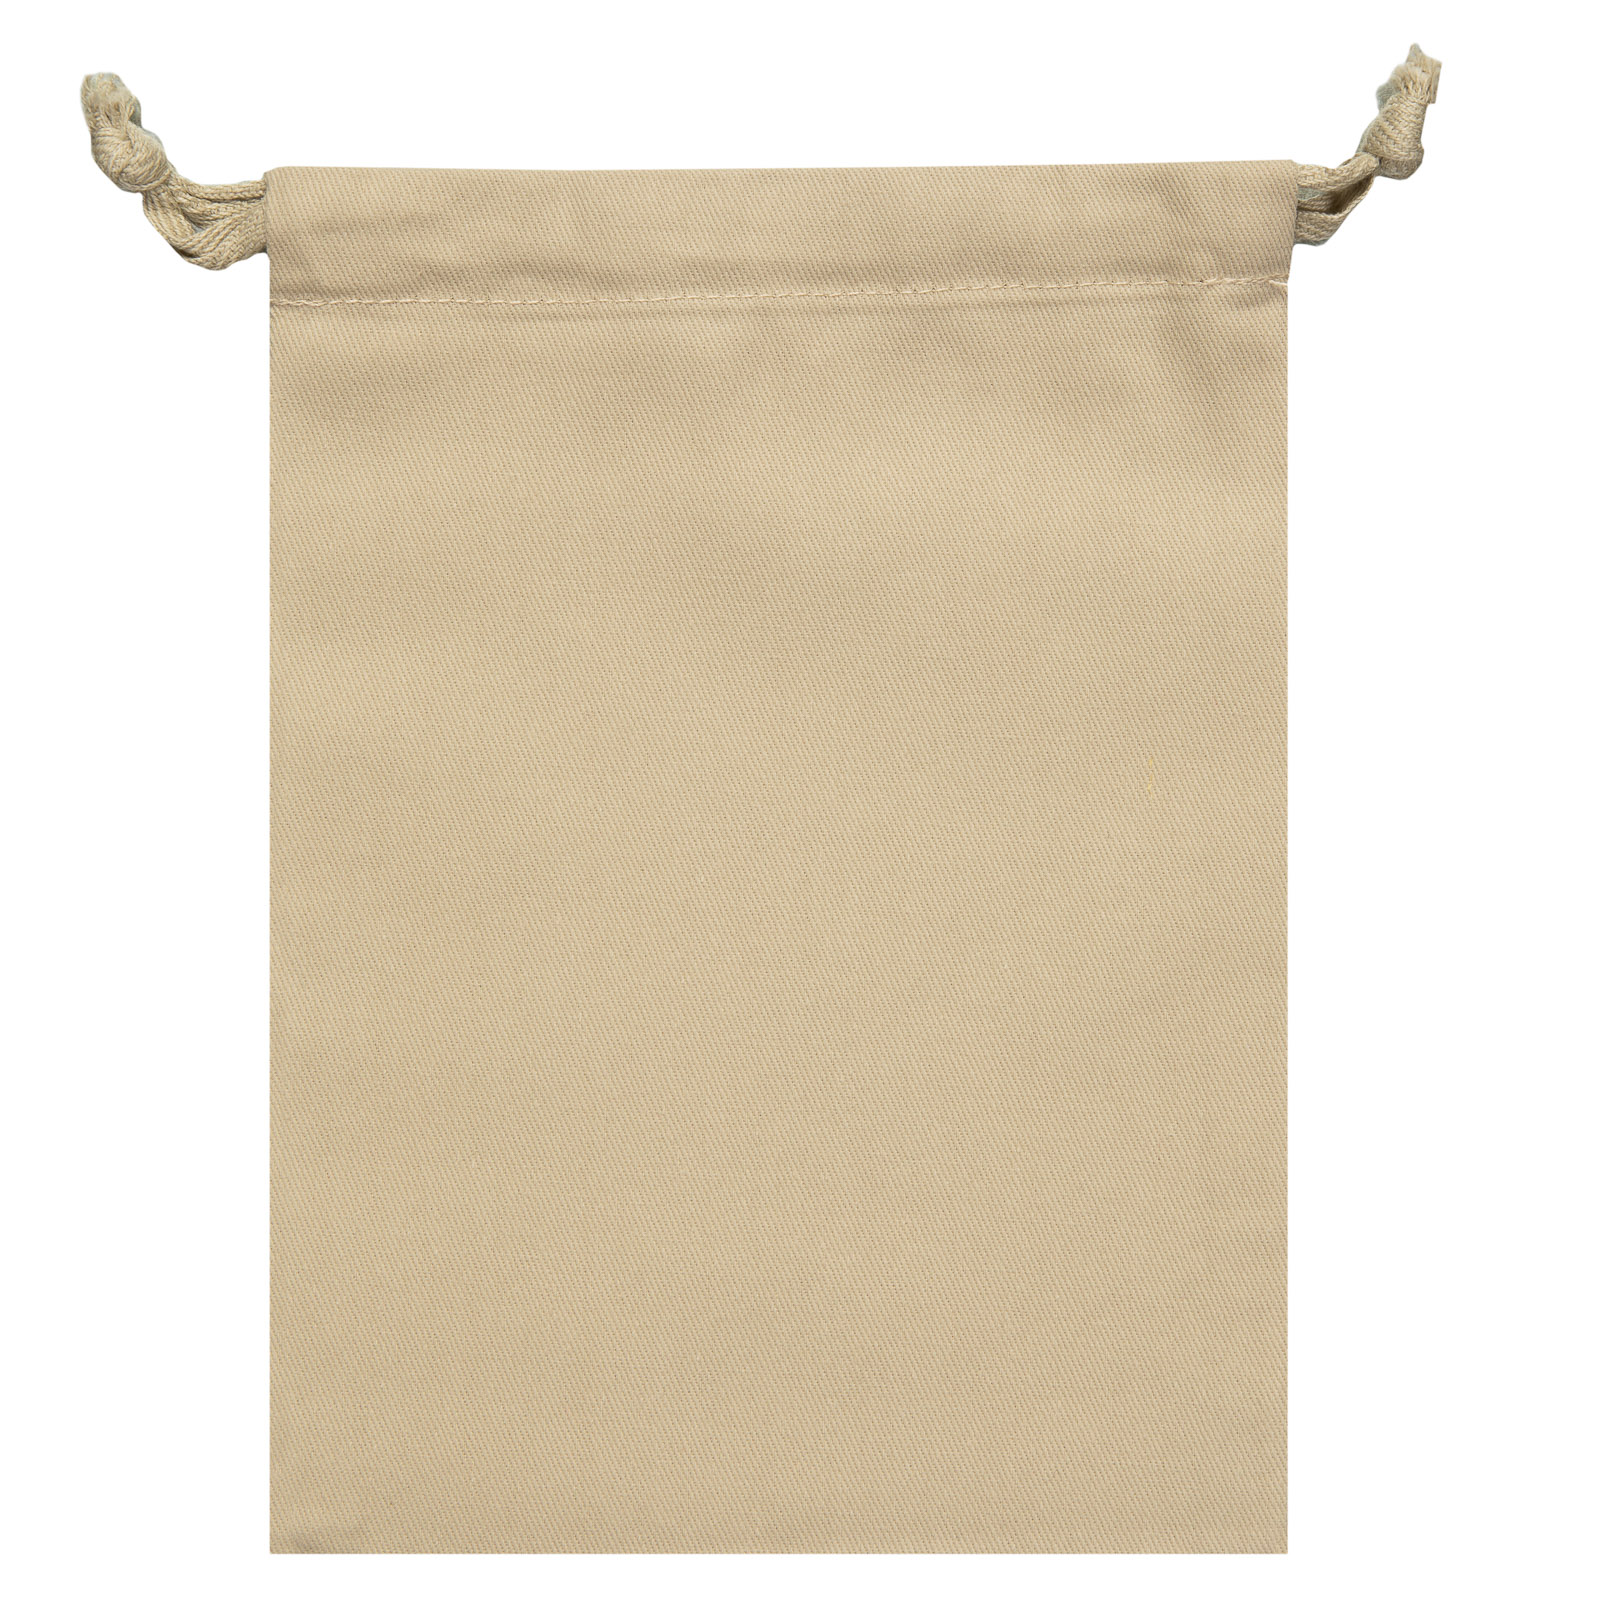 """Signature Napkins Face Covering Storage Pouch – 8"""" x 6"""" Drawstring Bag - 100% Cotton – 10 x Pack - Sand"""